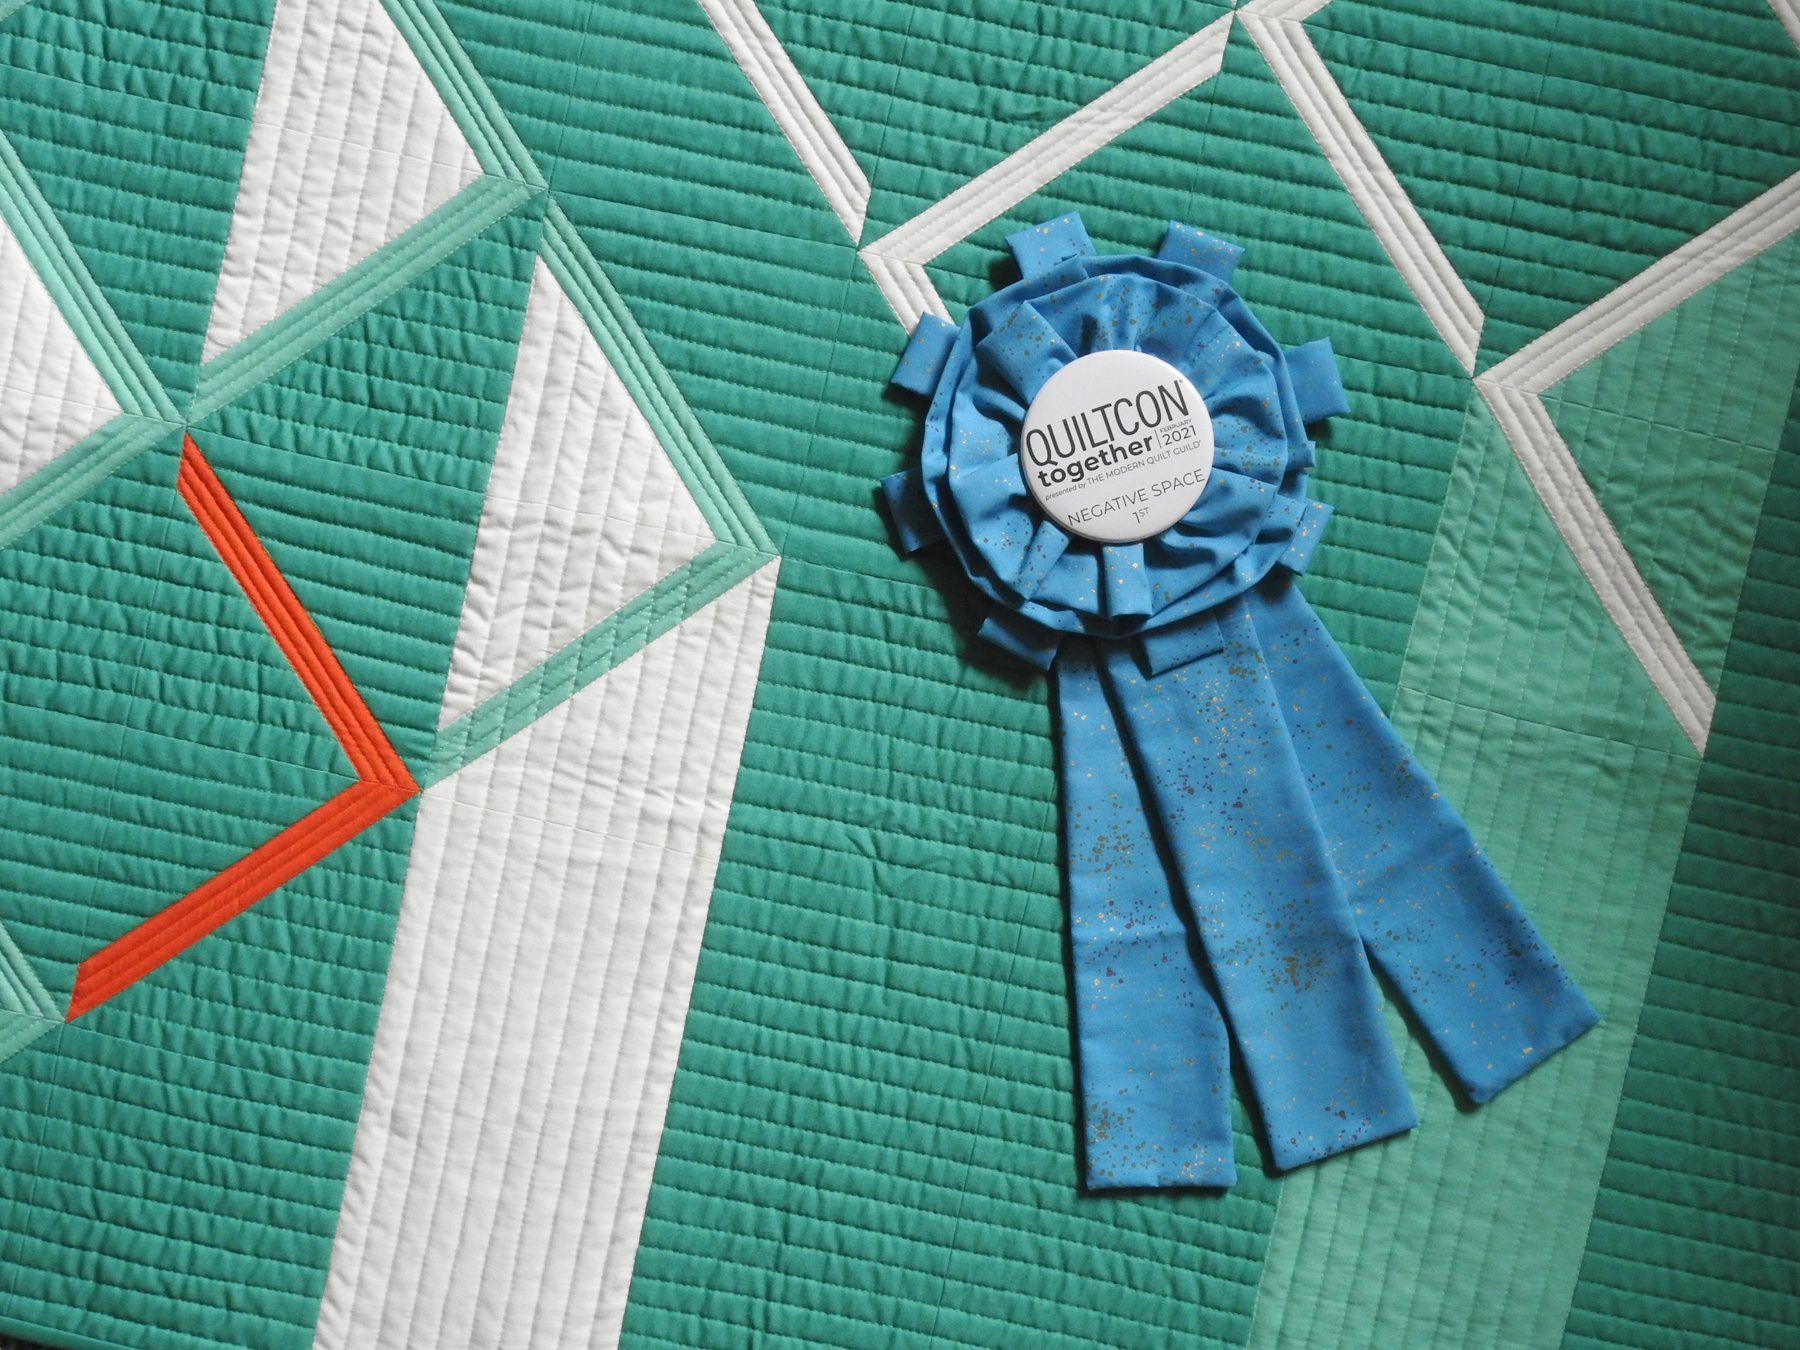 Downstream and QuiltCon Together Ribbon